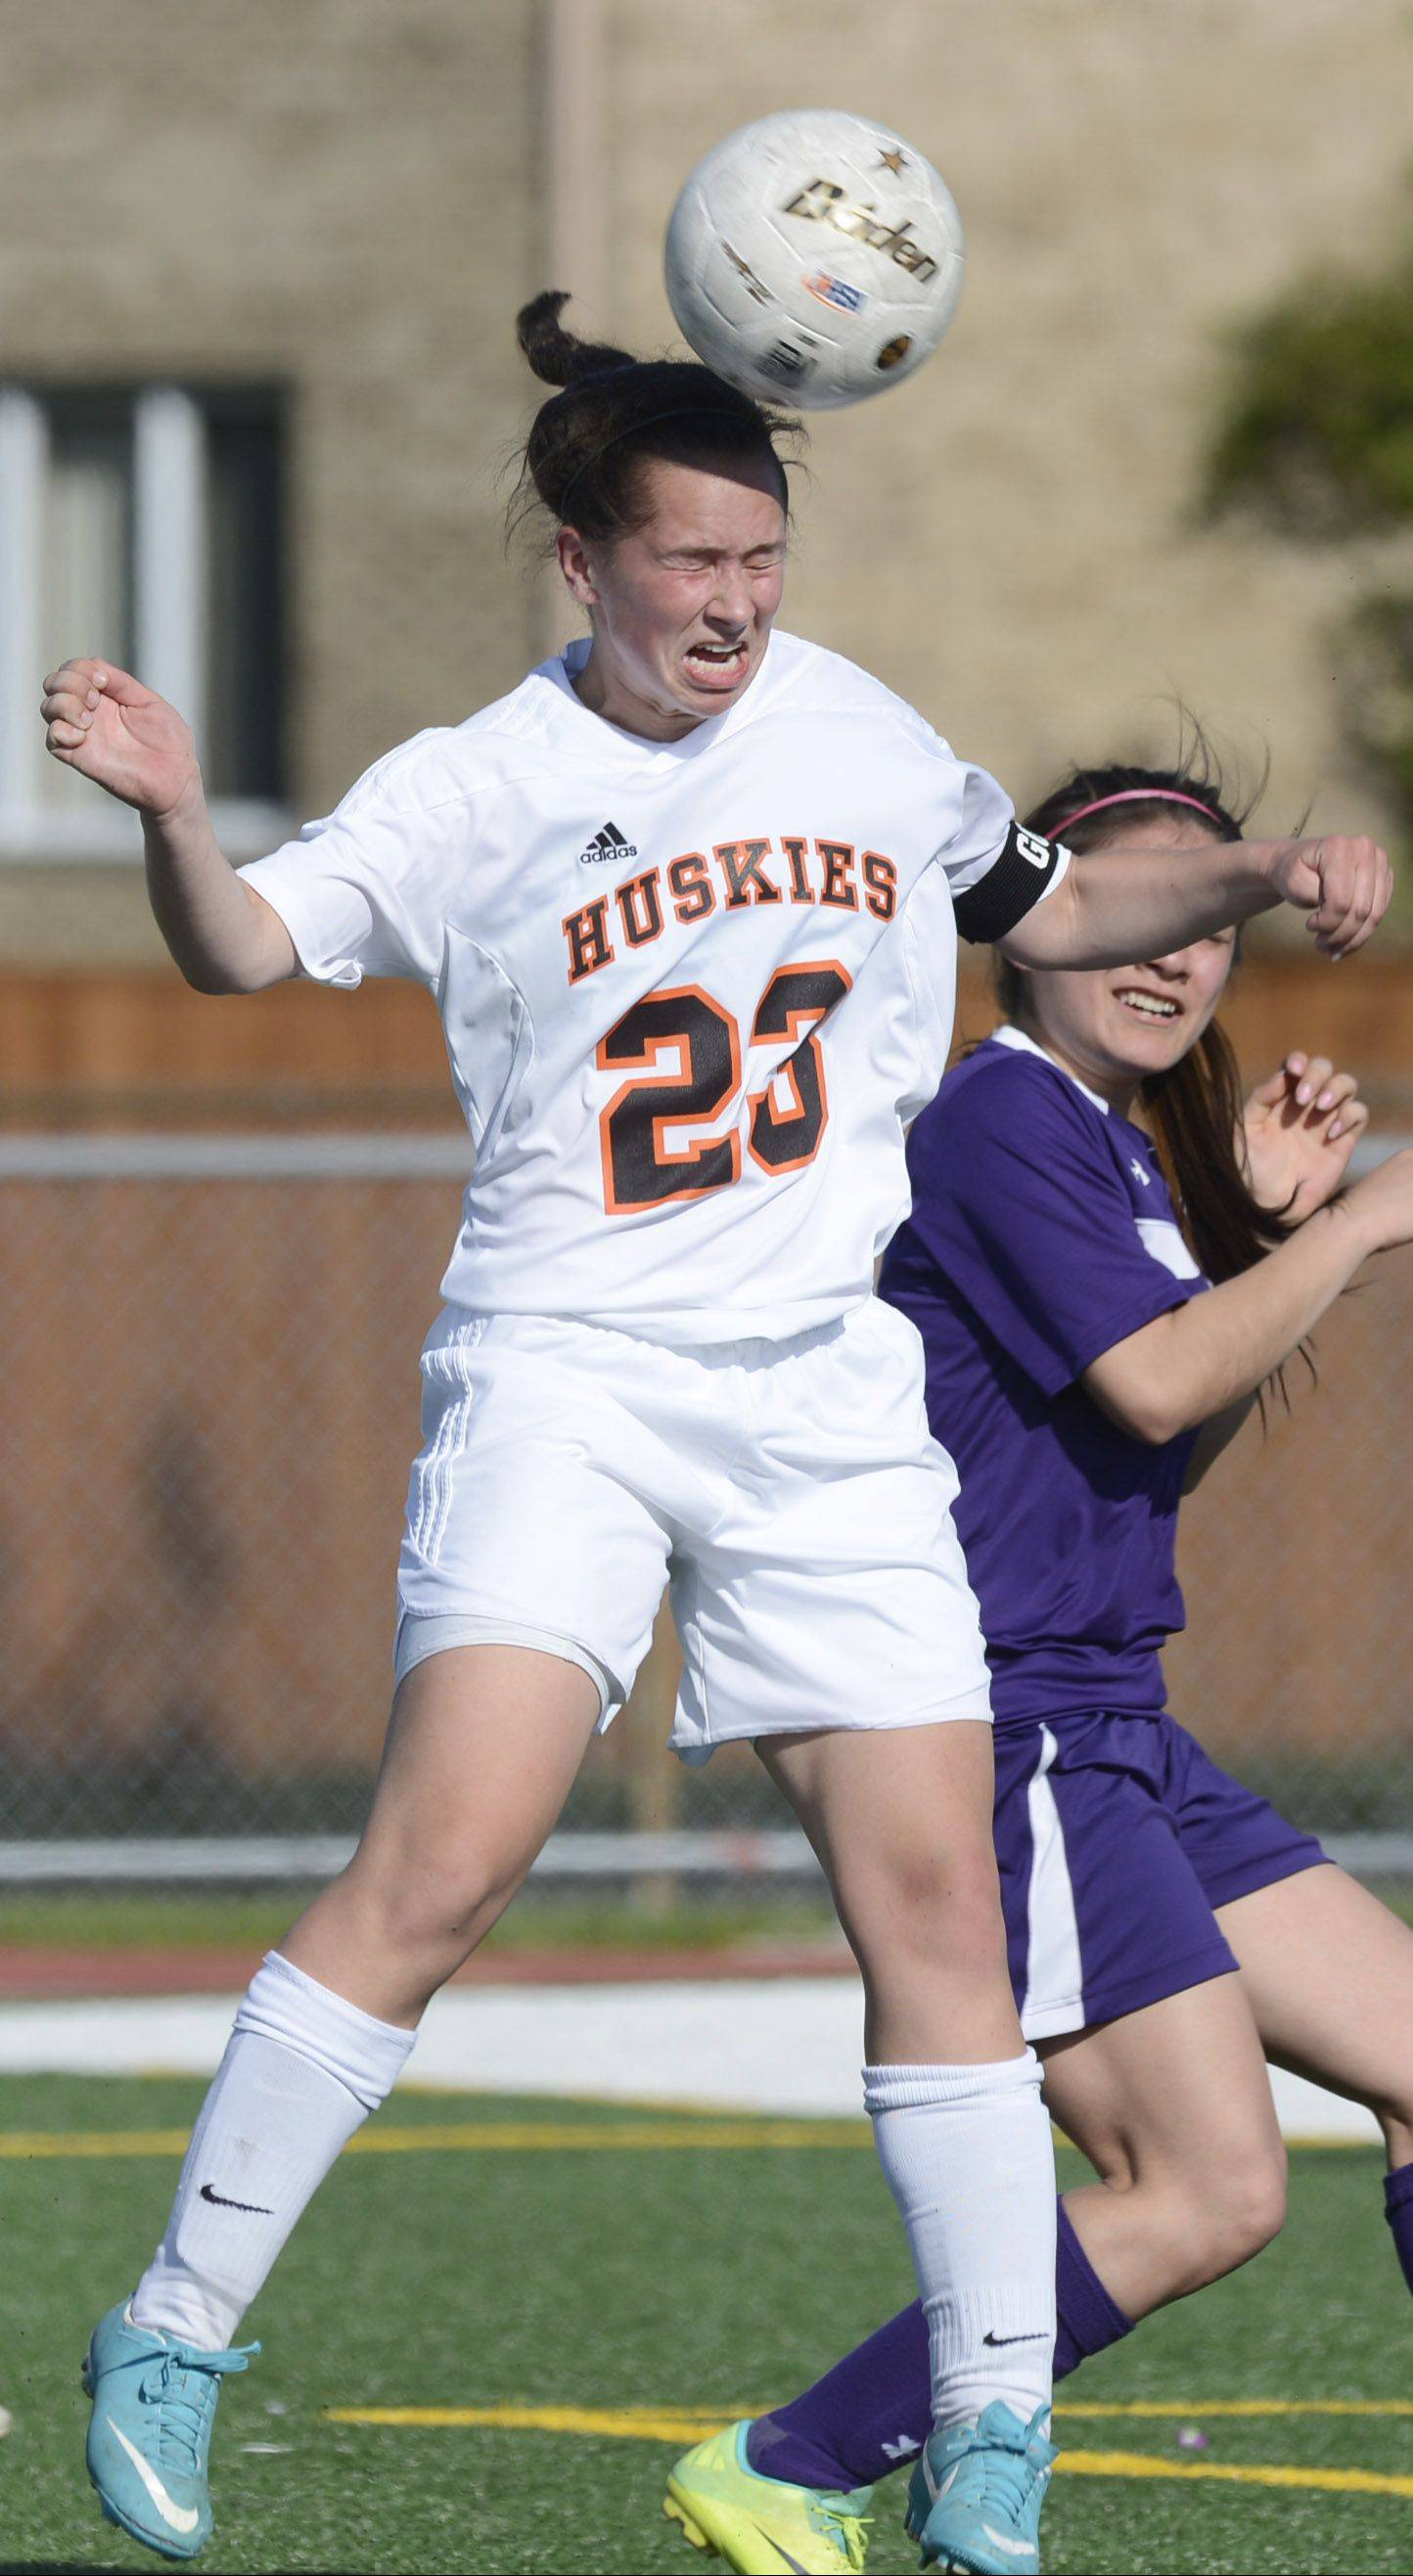 Hersey's Lauren Gierman, left, leaps for a header next to Waukegan's Jasmine Res. Gierman scored twice in the Huskies' 7-0 triumph; Hersey will host Stevenson in regional final play Friday.